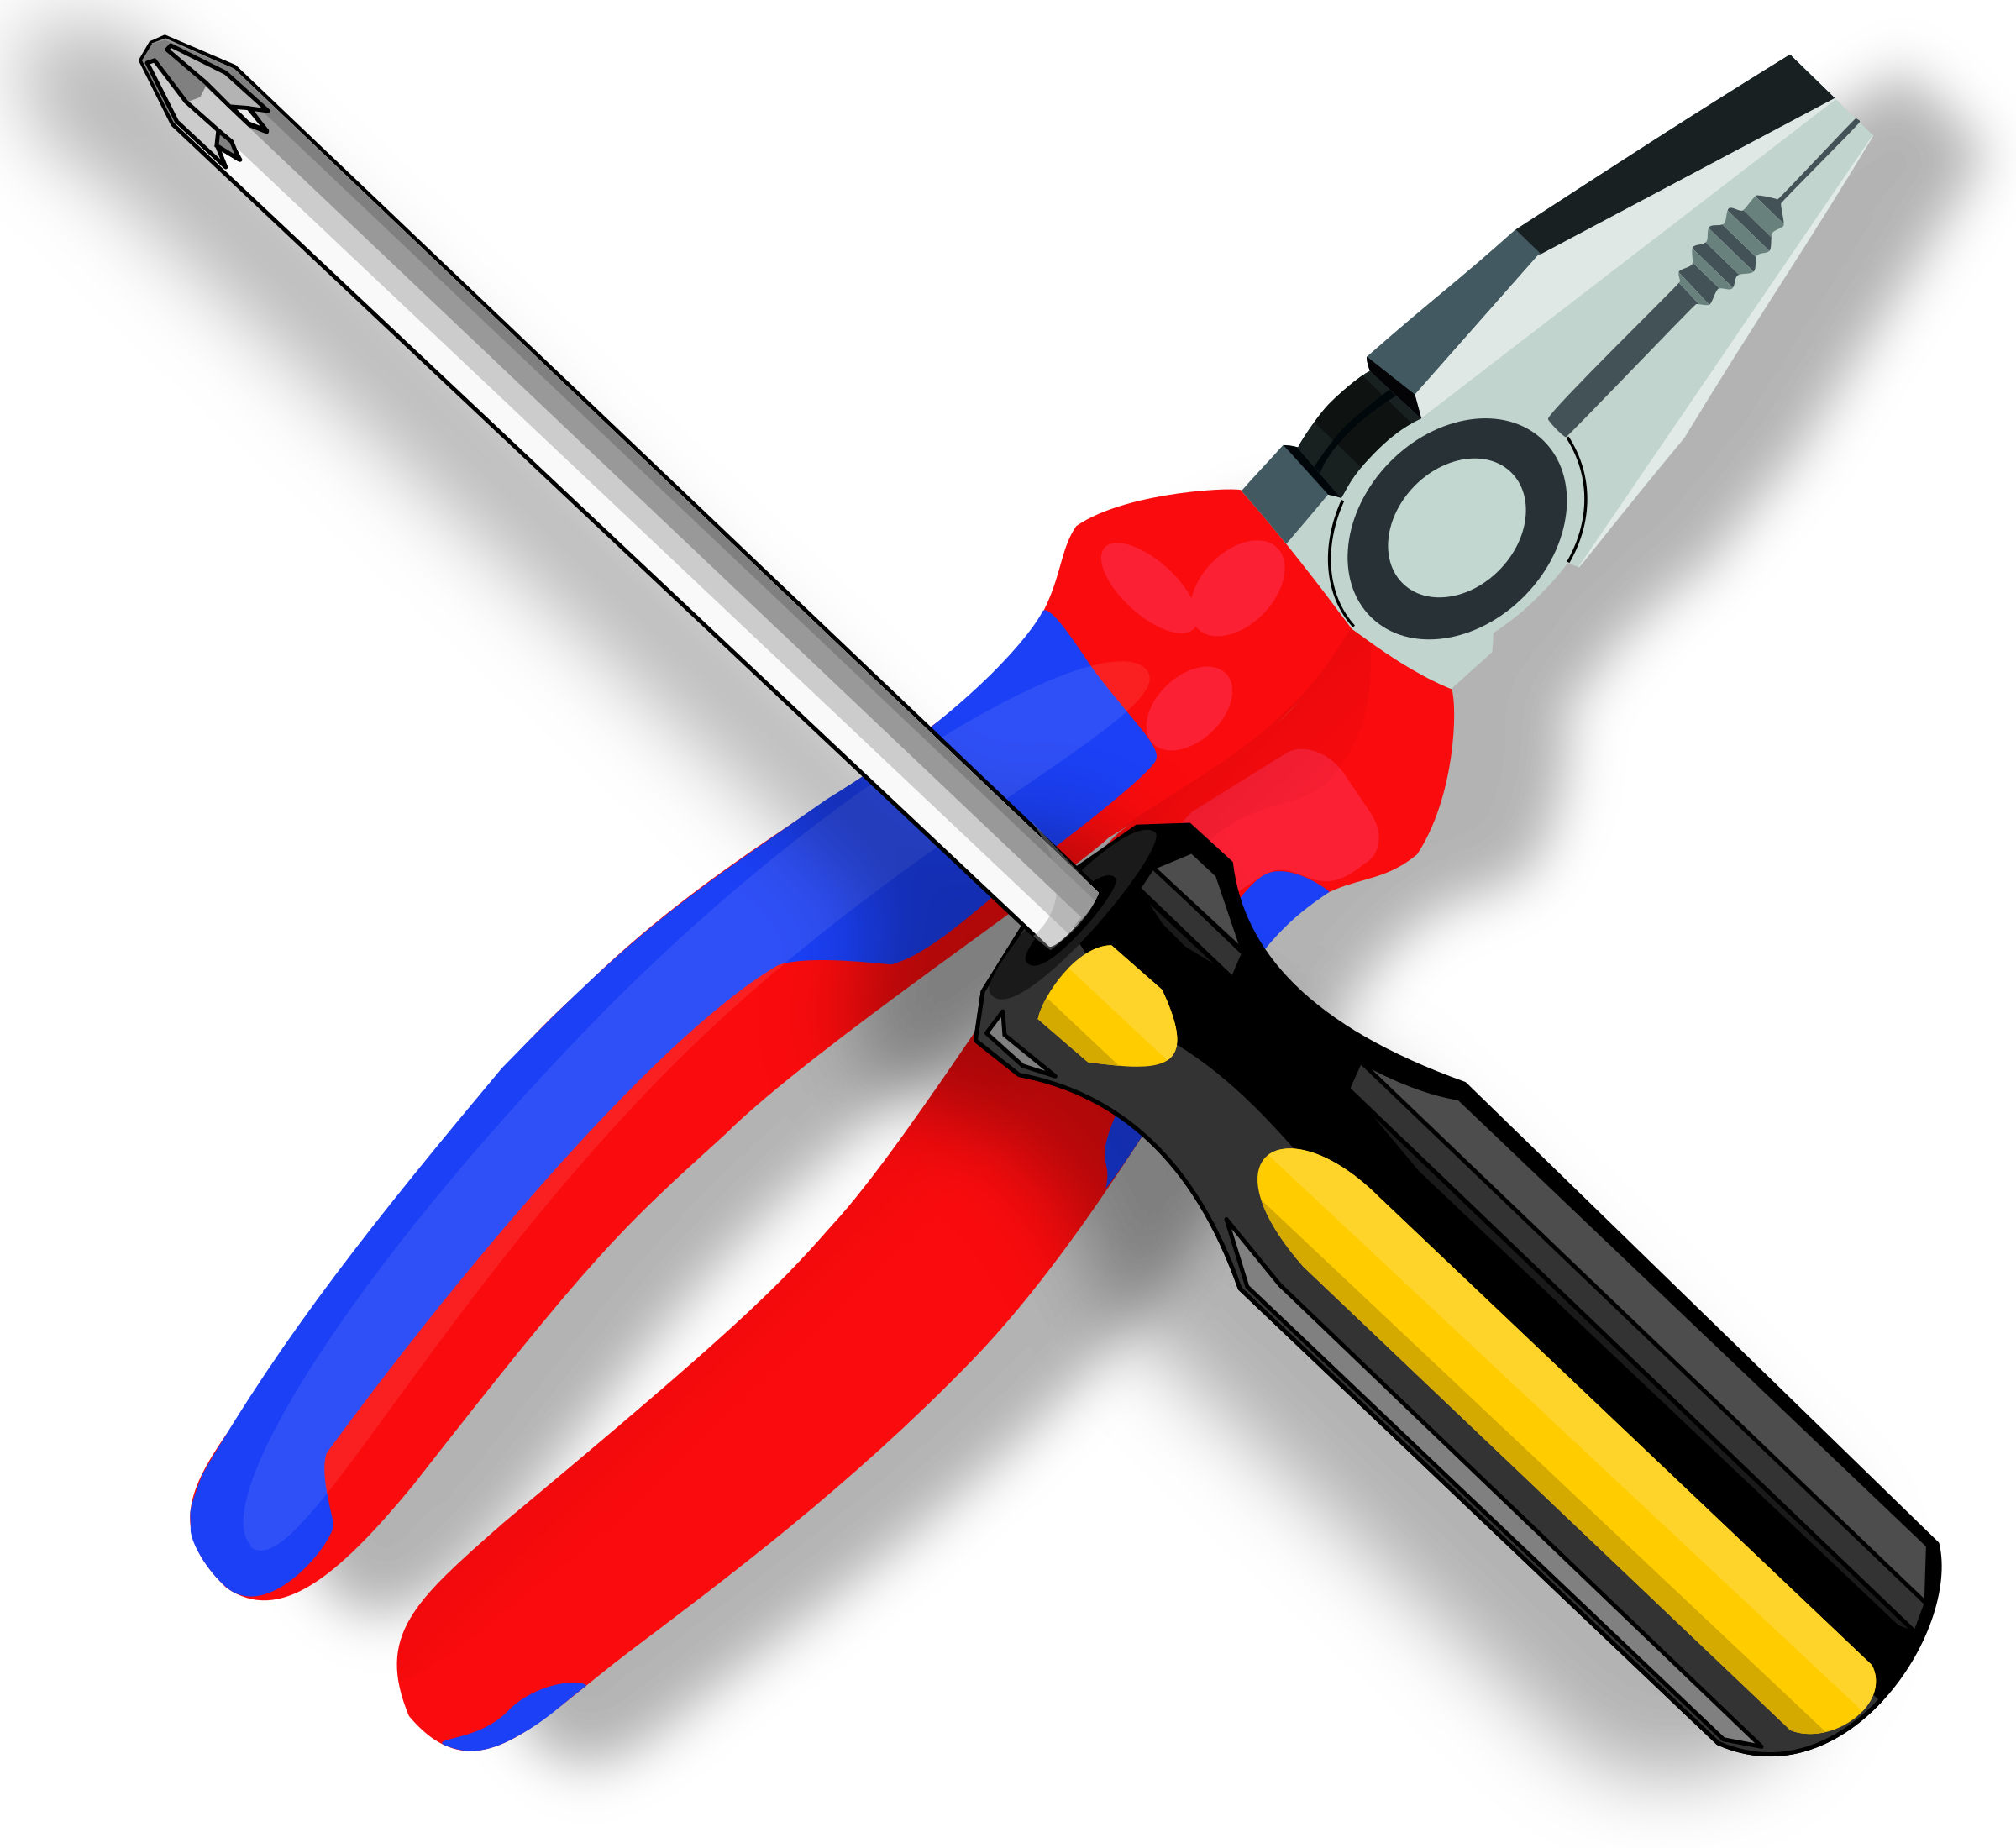 Electrician electricity tool